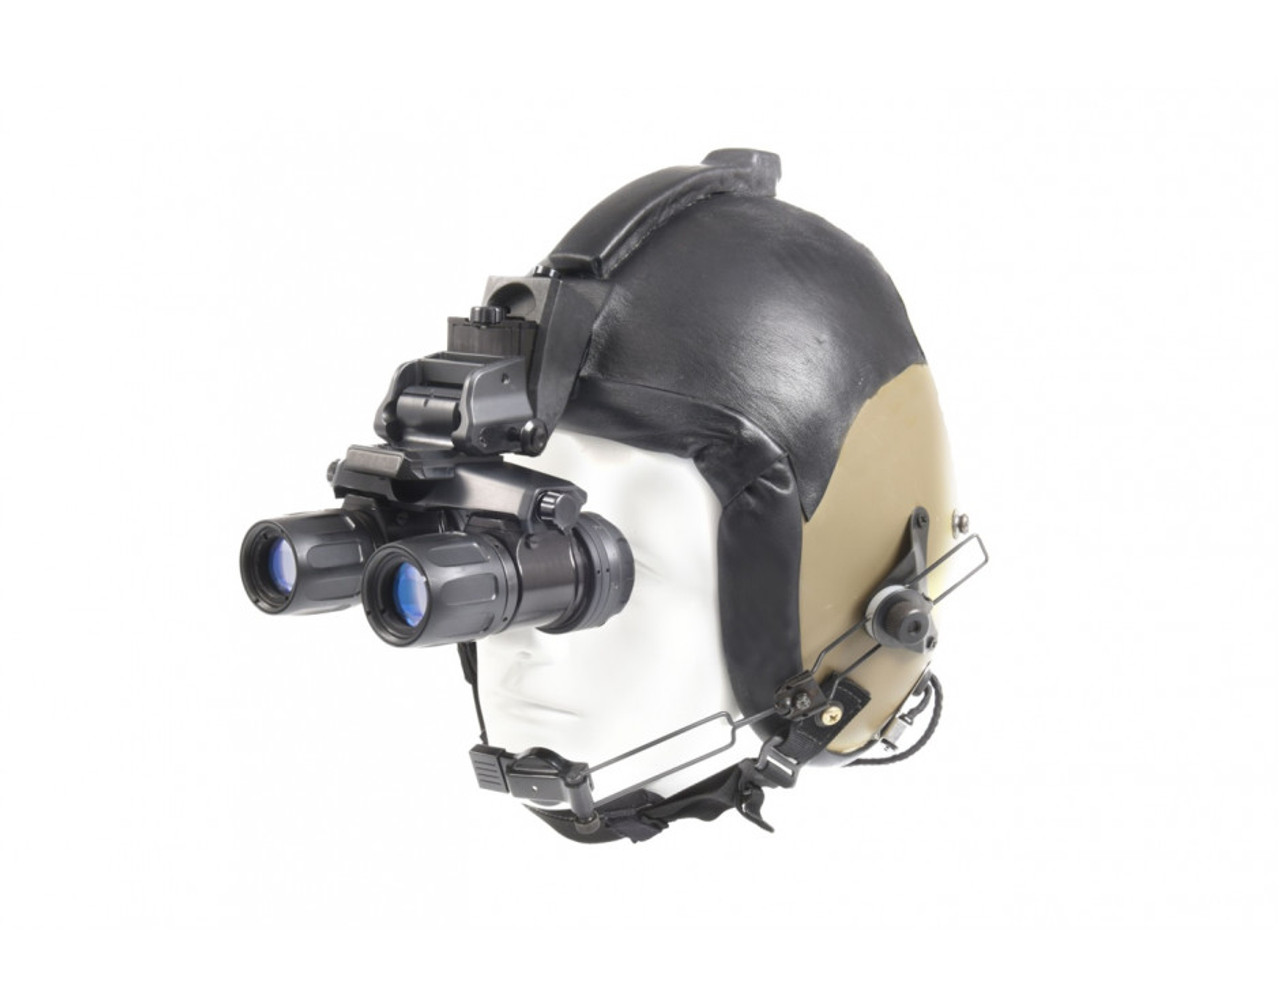 """AGM Apache A9 Aviator Night Vision Aviation Goggle System Gen 3 Auto-Gated """"Level 1"""". Made in USA (AGM Apache A9)"""